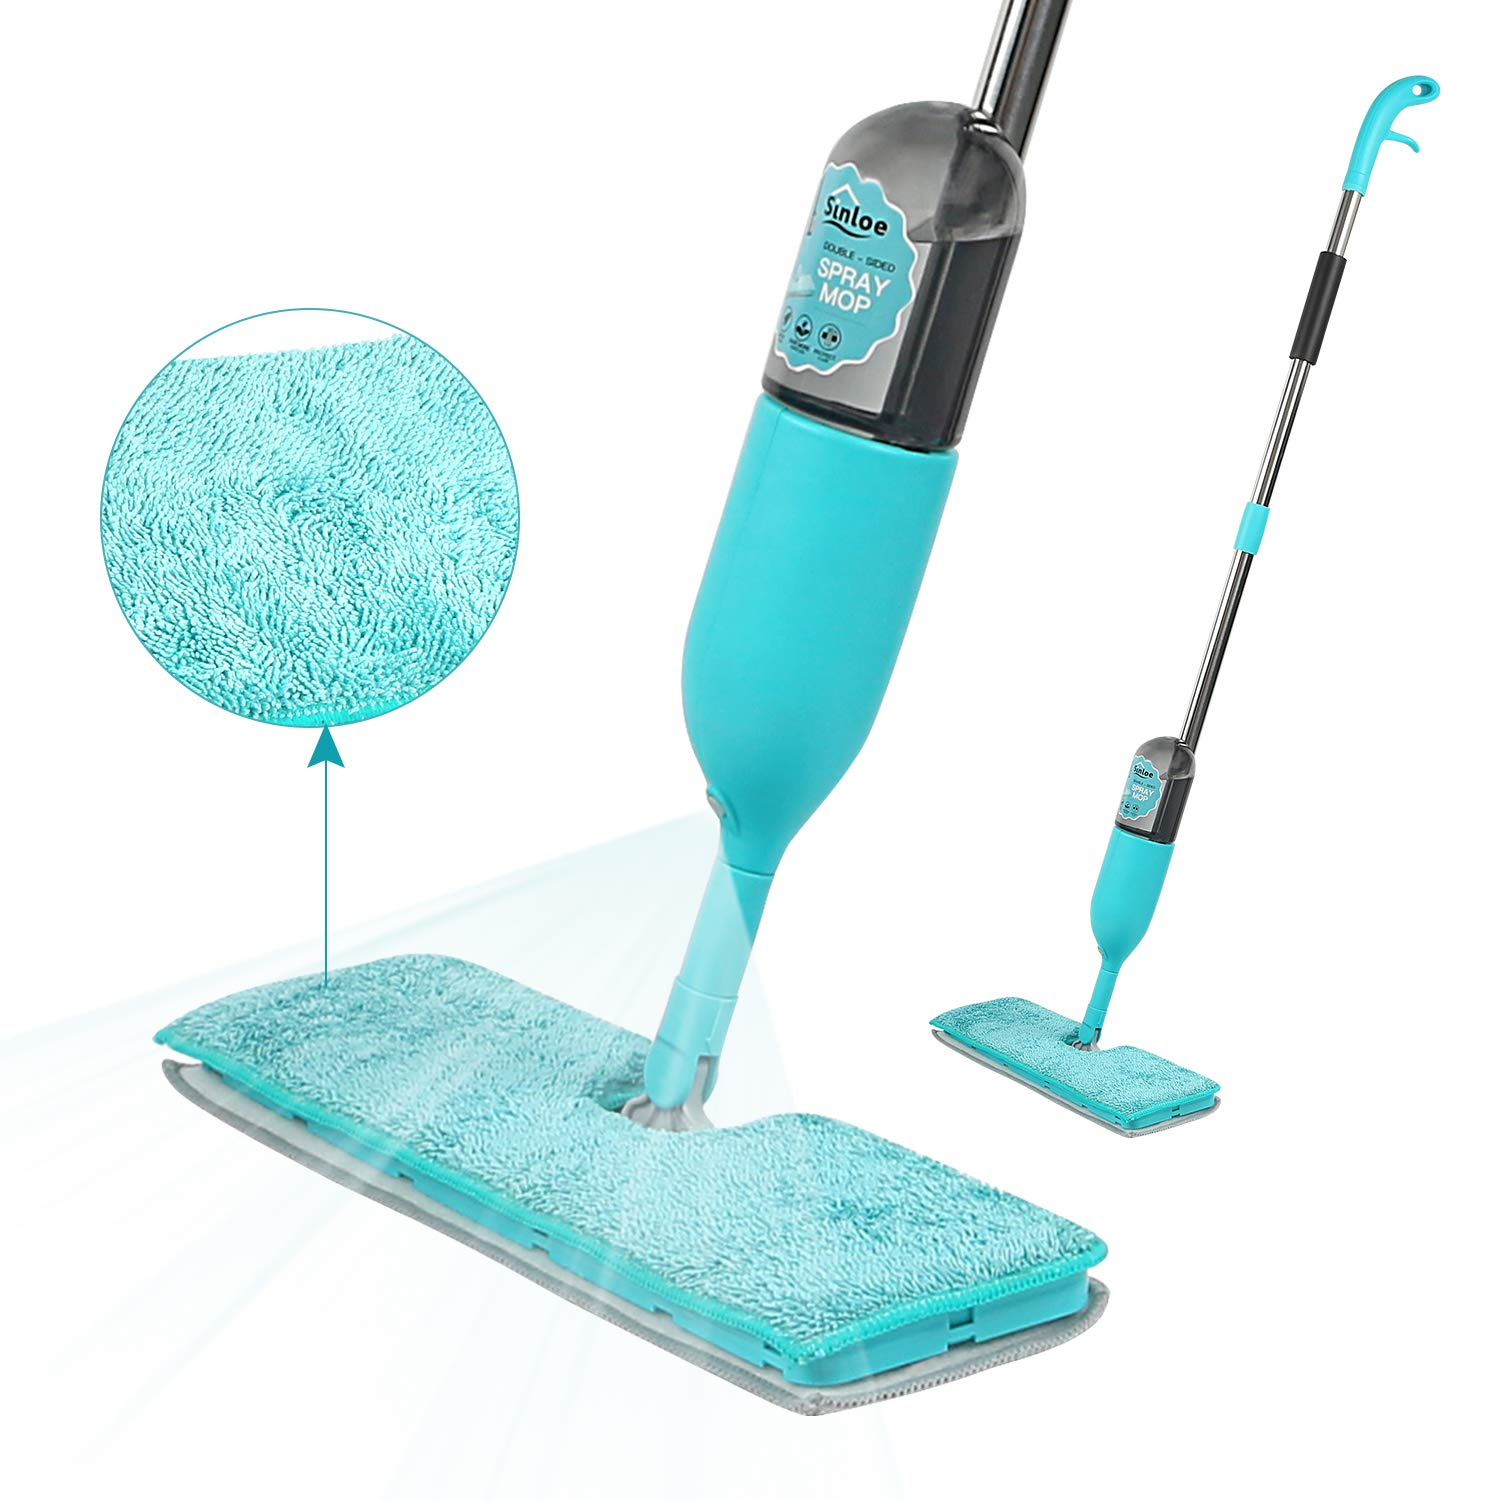 Double-Sided 360 Degree Spray Mop - SINLOE Dry/Wet Floor Cleaning Mop with Microfiber Reusable Pads Refillable Spray Bottle for Home Kitchen Hardwood/Laminate/Tile/Ceramic/Vinyl Flooring